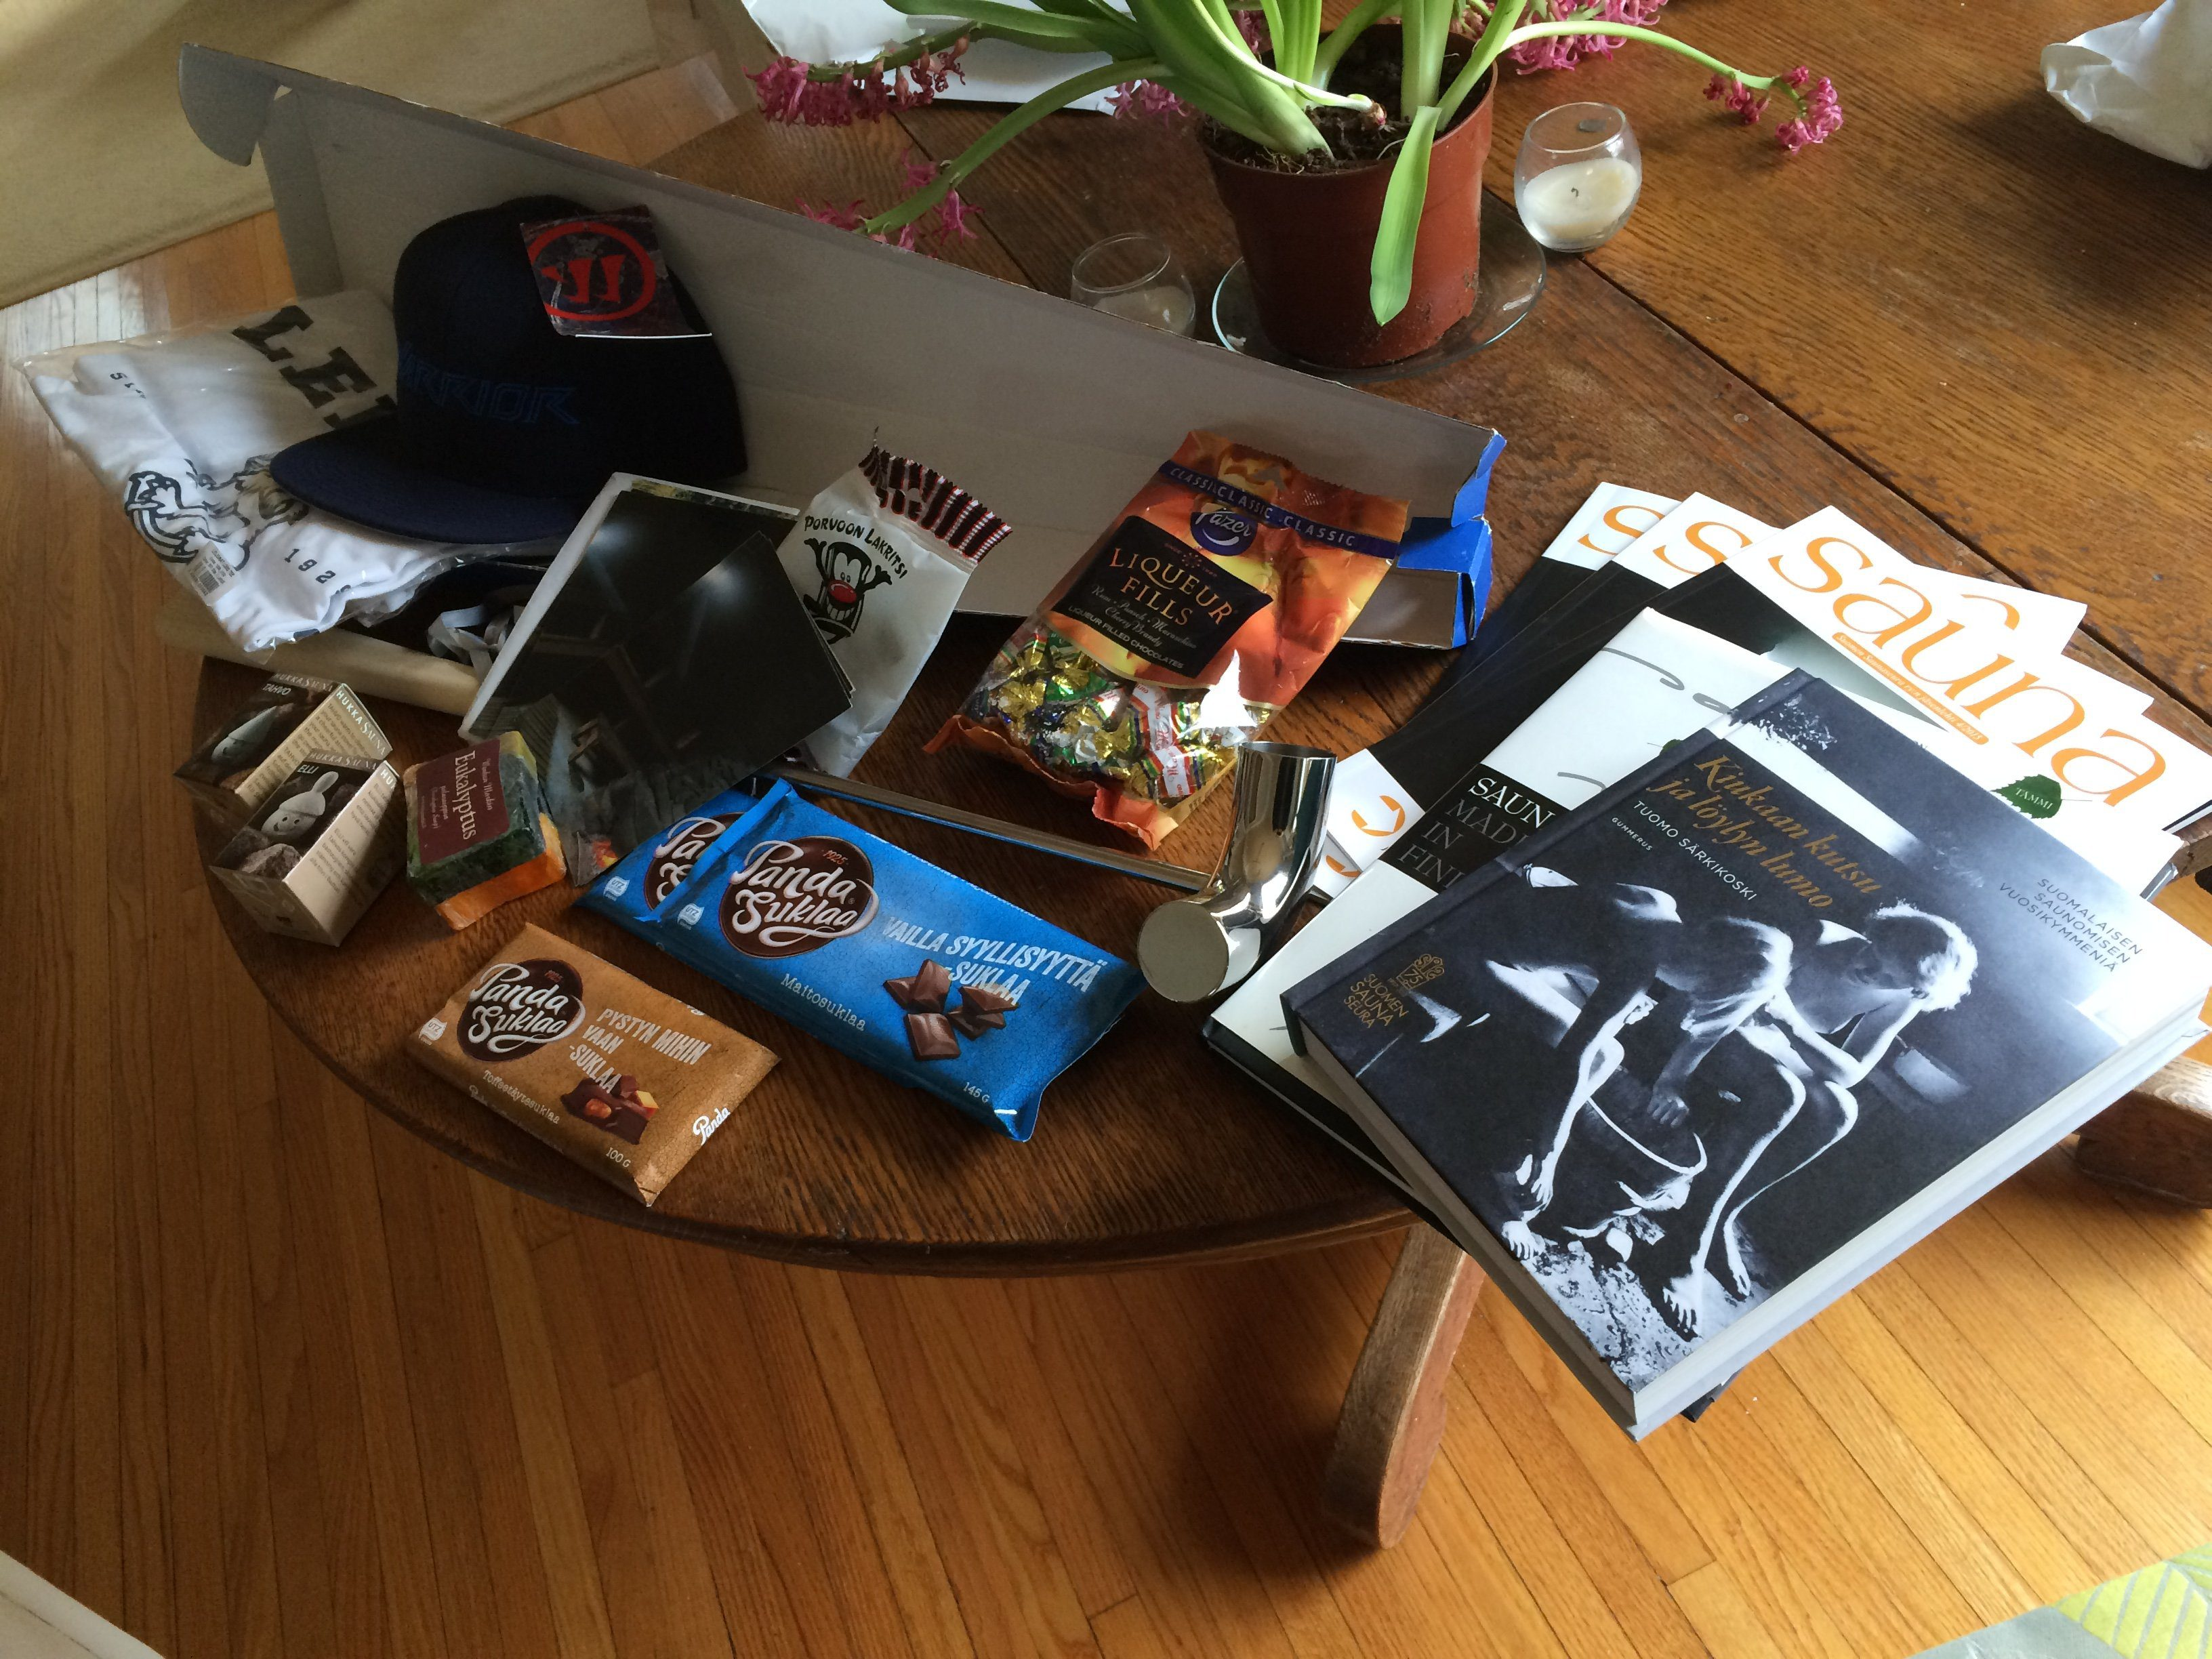 Finnish Sauna Society gifts for saunatimes